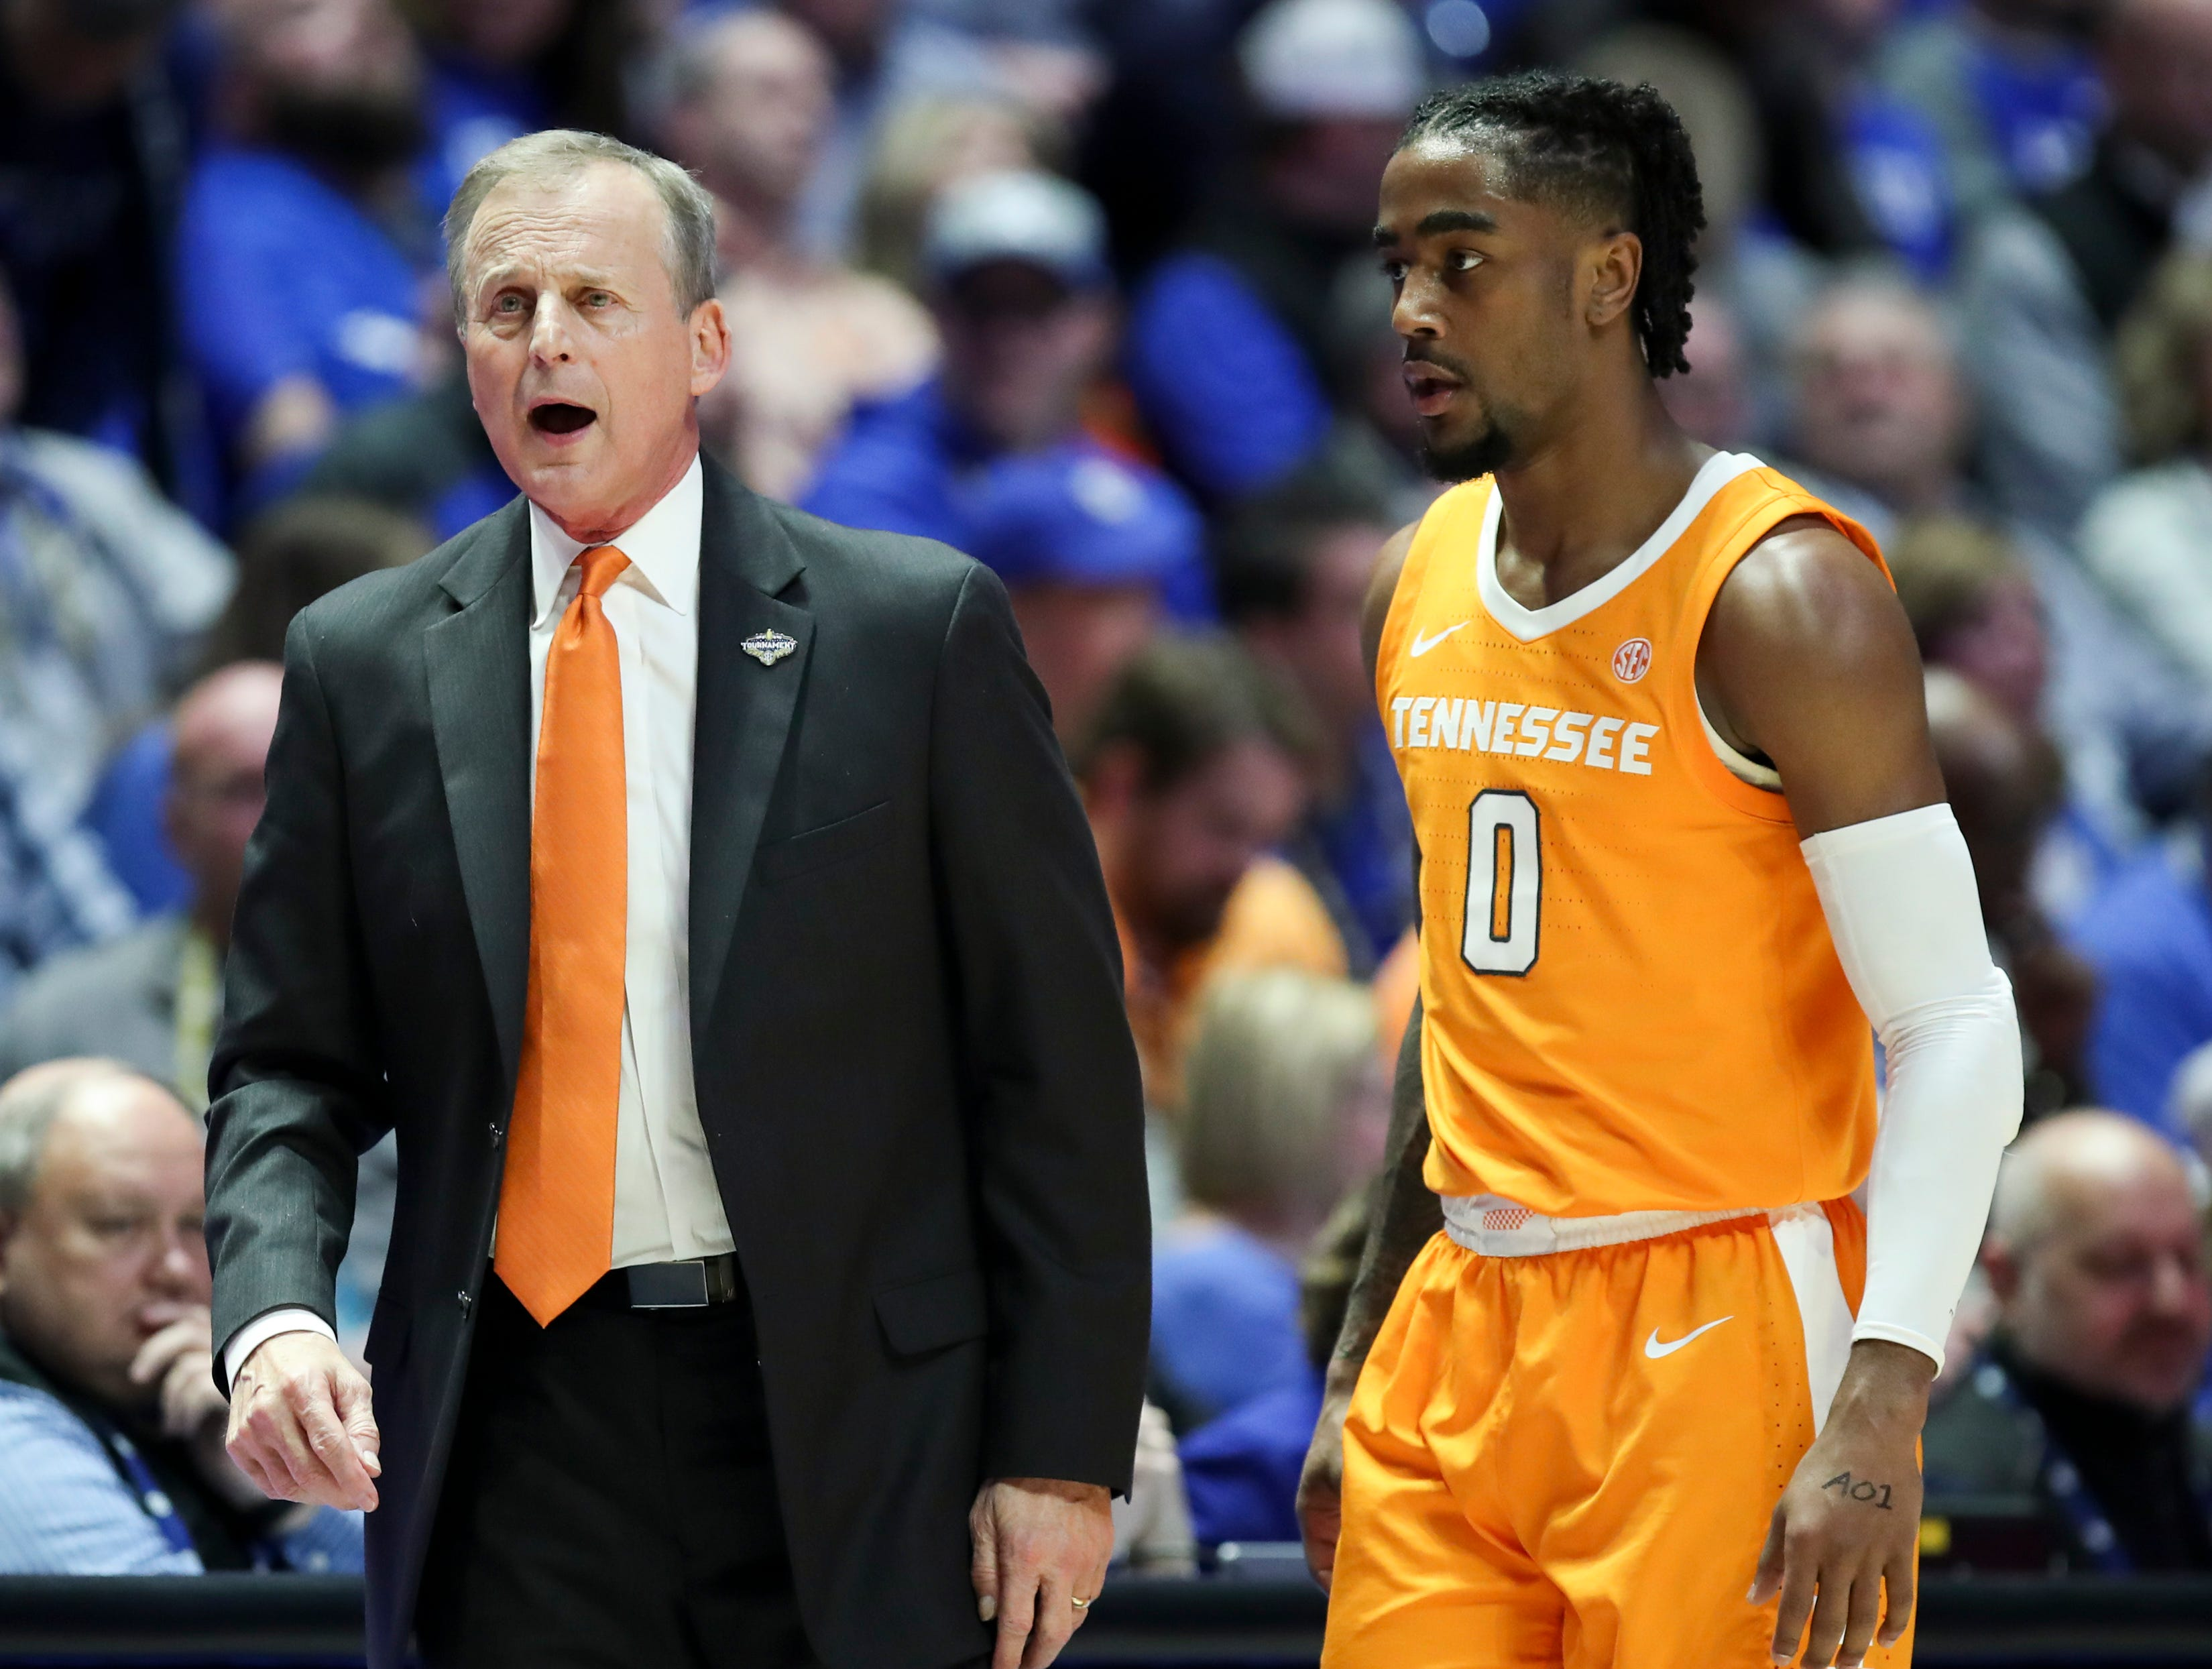 Tennessee head coach Rick Barnes works with guard Jordan Bone (0) during the first half of the SEC Men's Basketball Tournament semifinal game against Kentucky at Bridgestone Arena in Nashville, Tenn., Saturday, March 16, 2019.